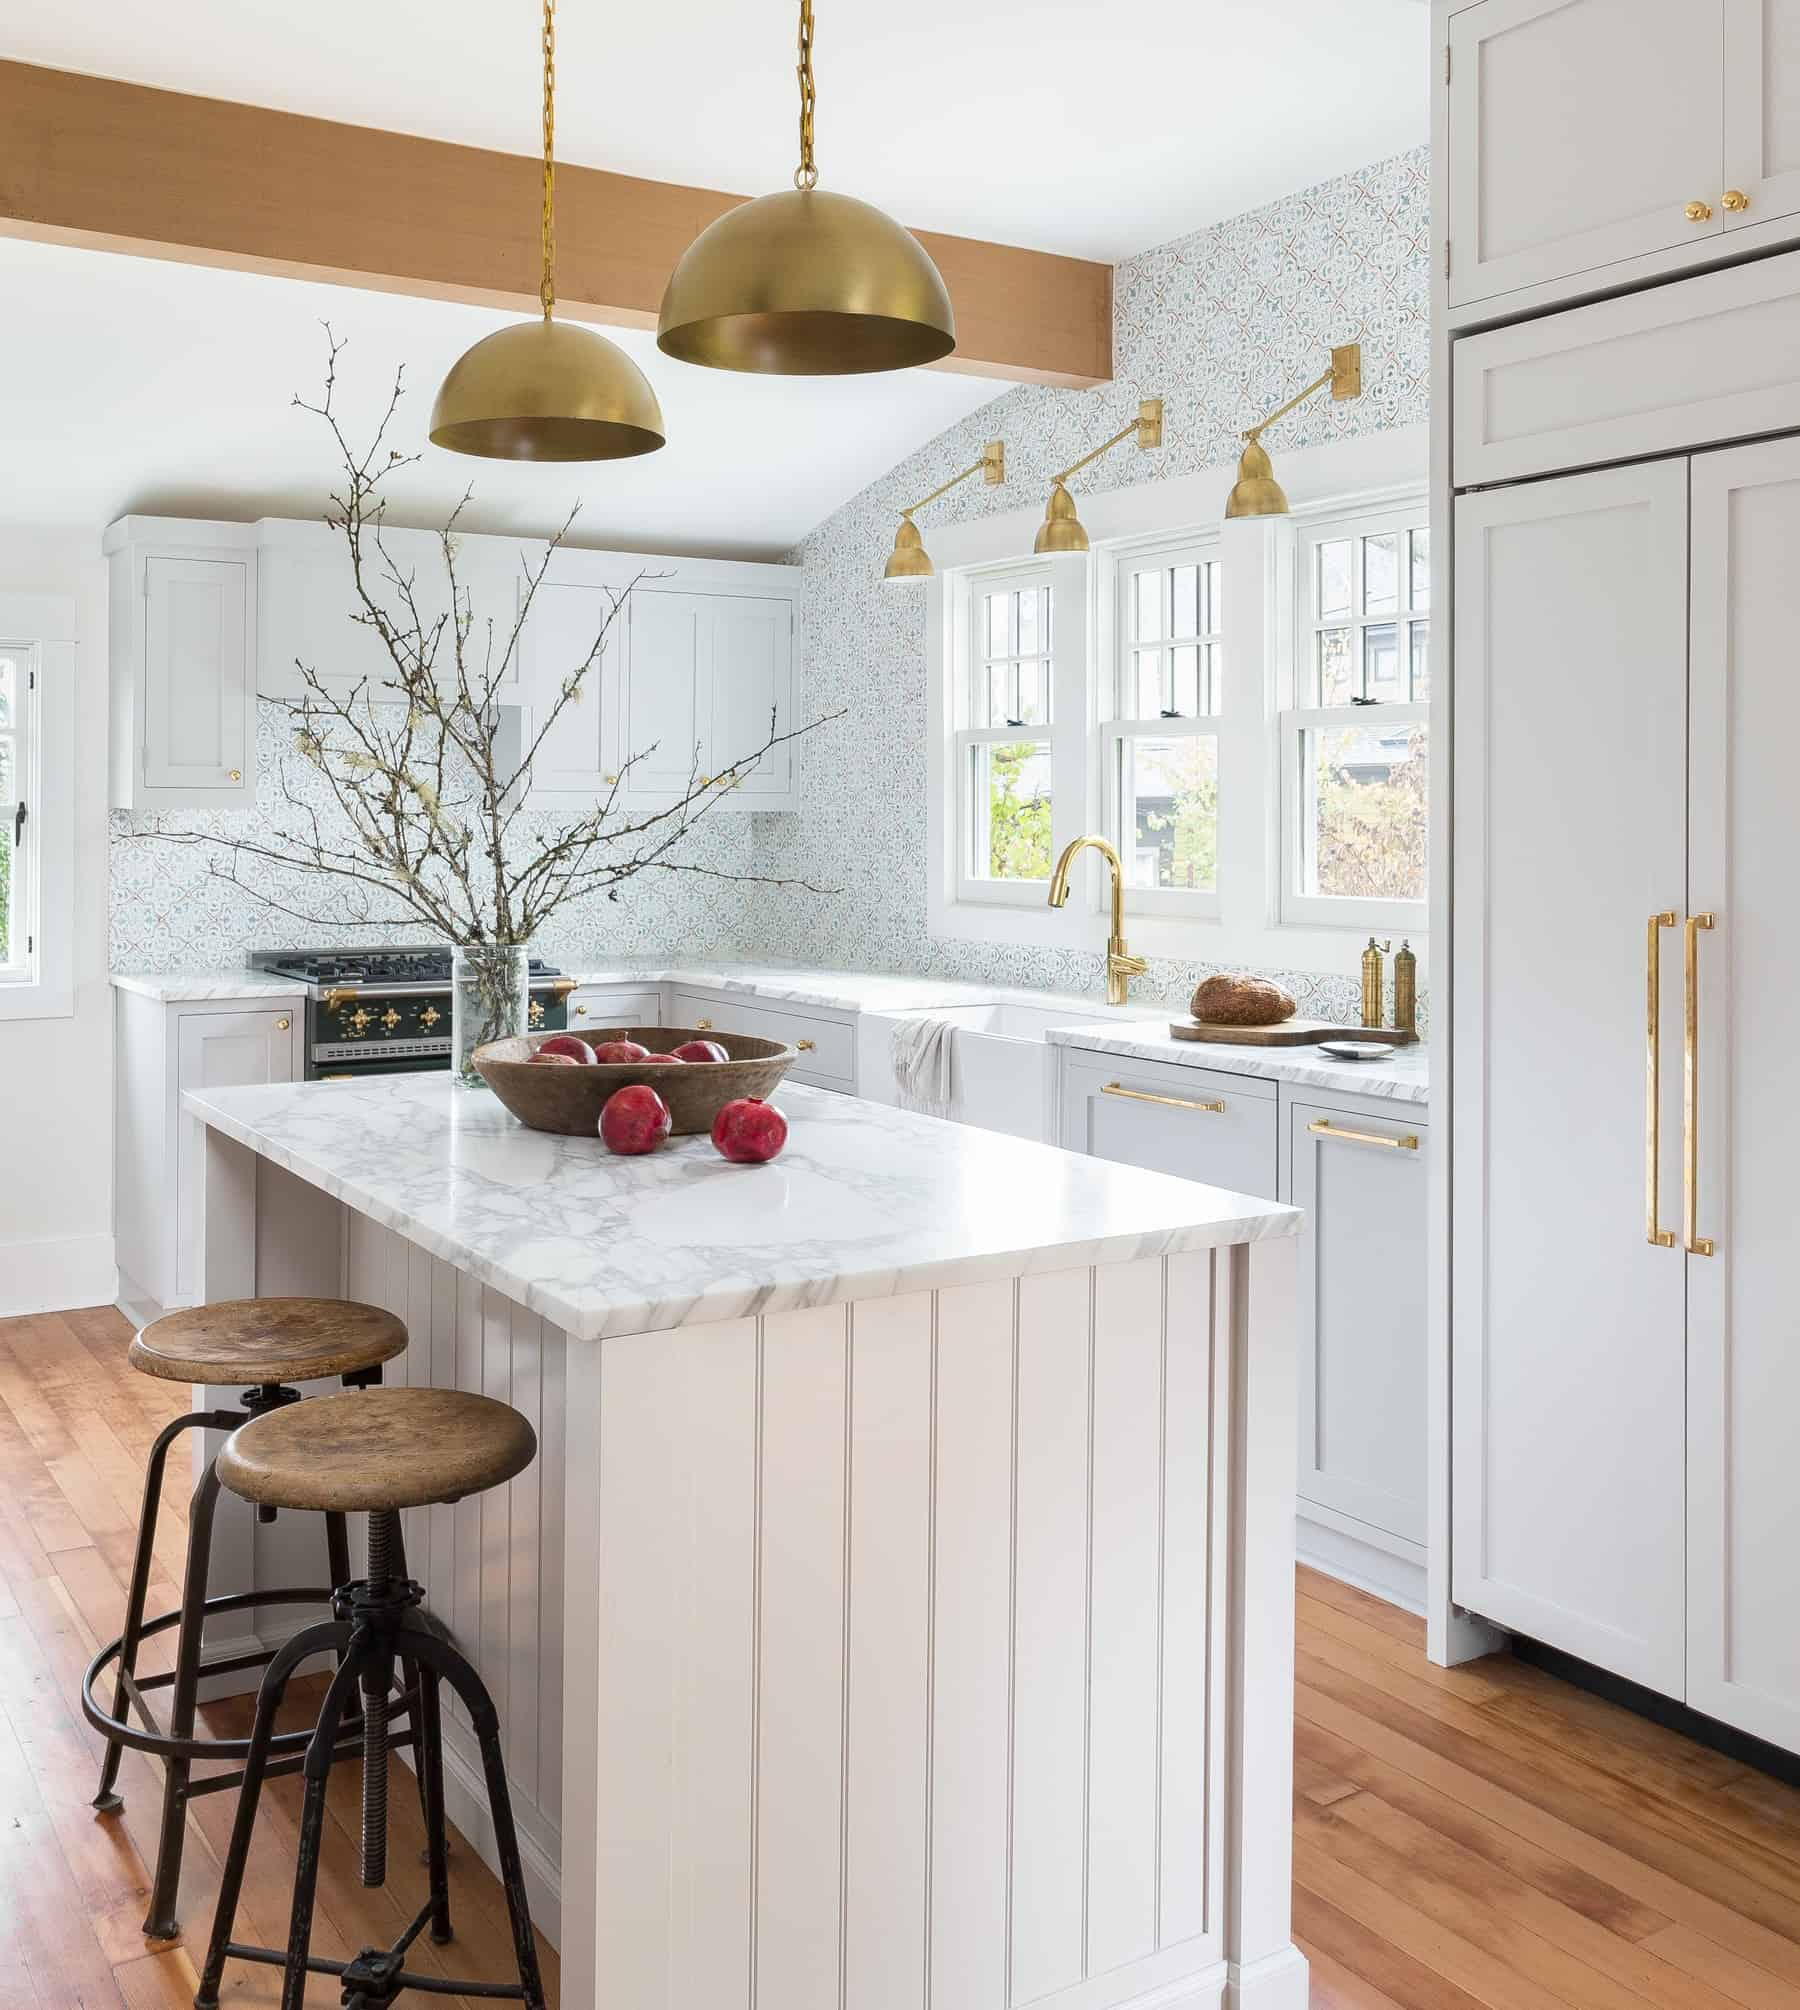 Kitchen Cabinets In Seattle: Heidi-Caillier-Design-Seattle-interior-designer-kitchen